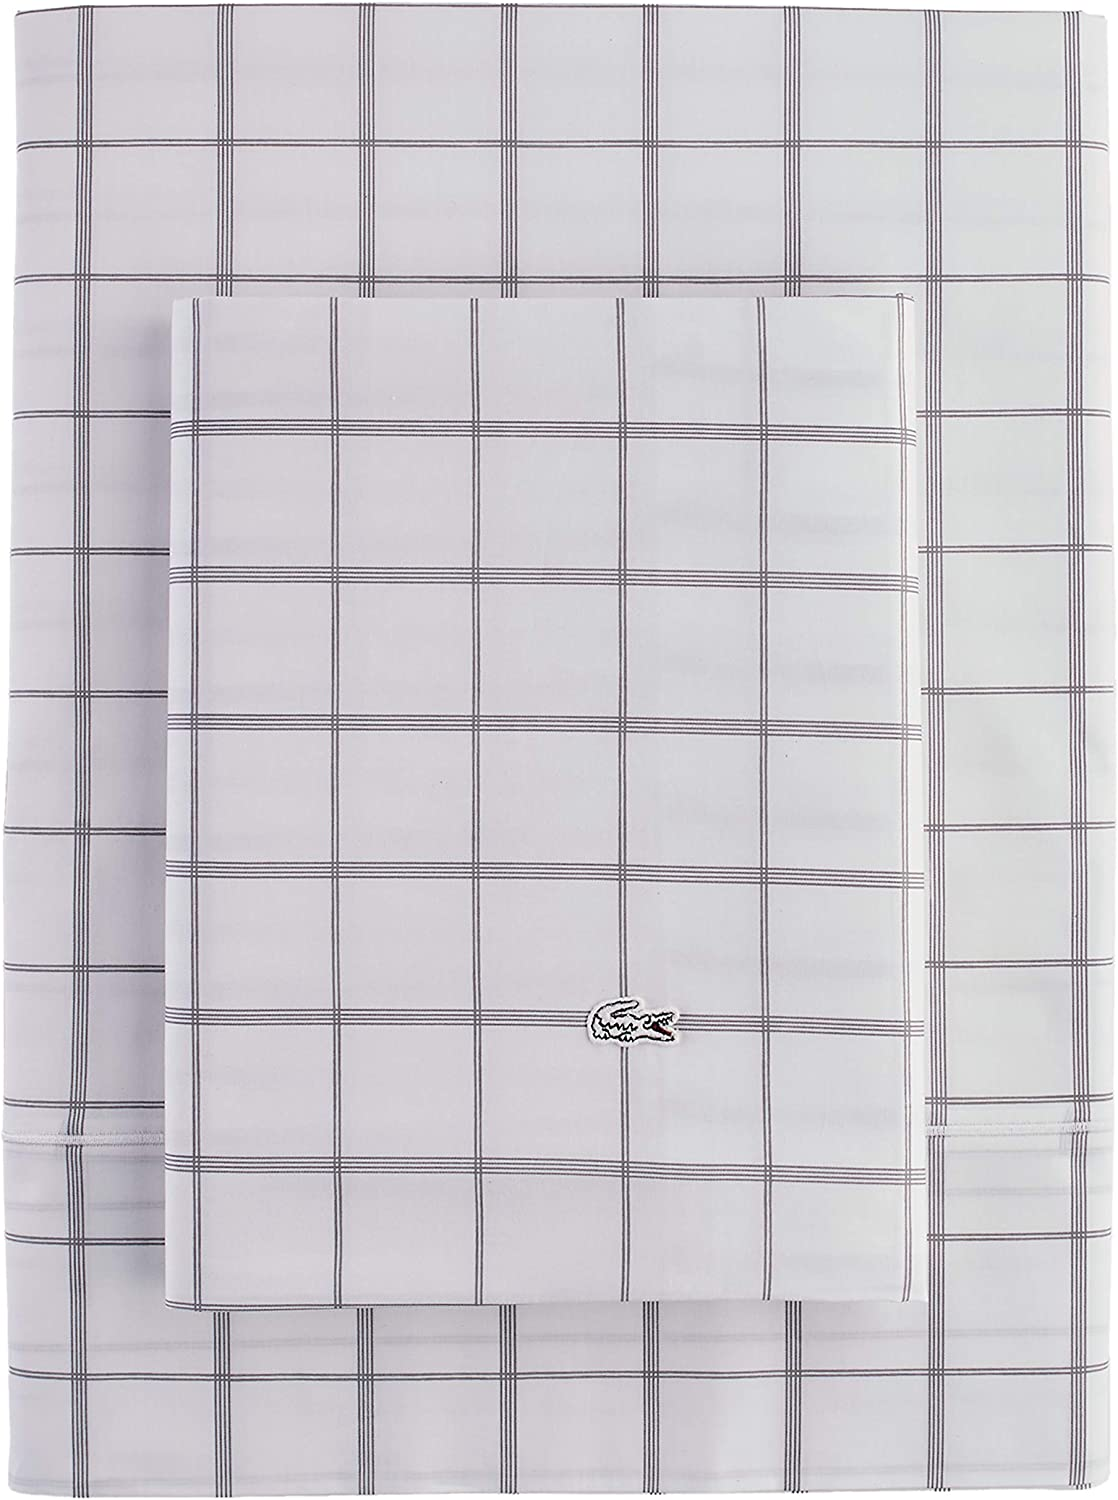 Lacoste Match Point Collection 4-Piece Sheet California Popular standard Set Deluxe Kin